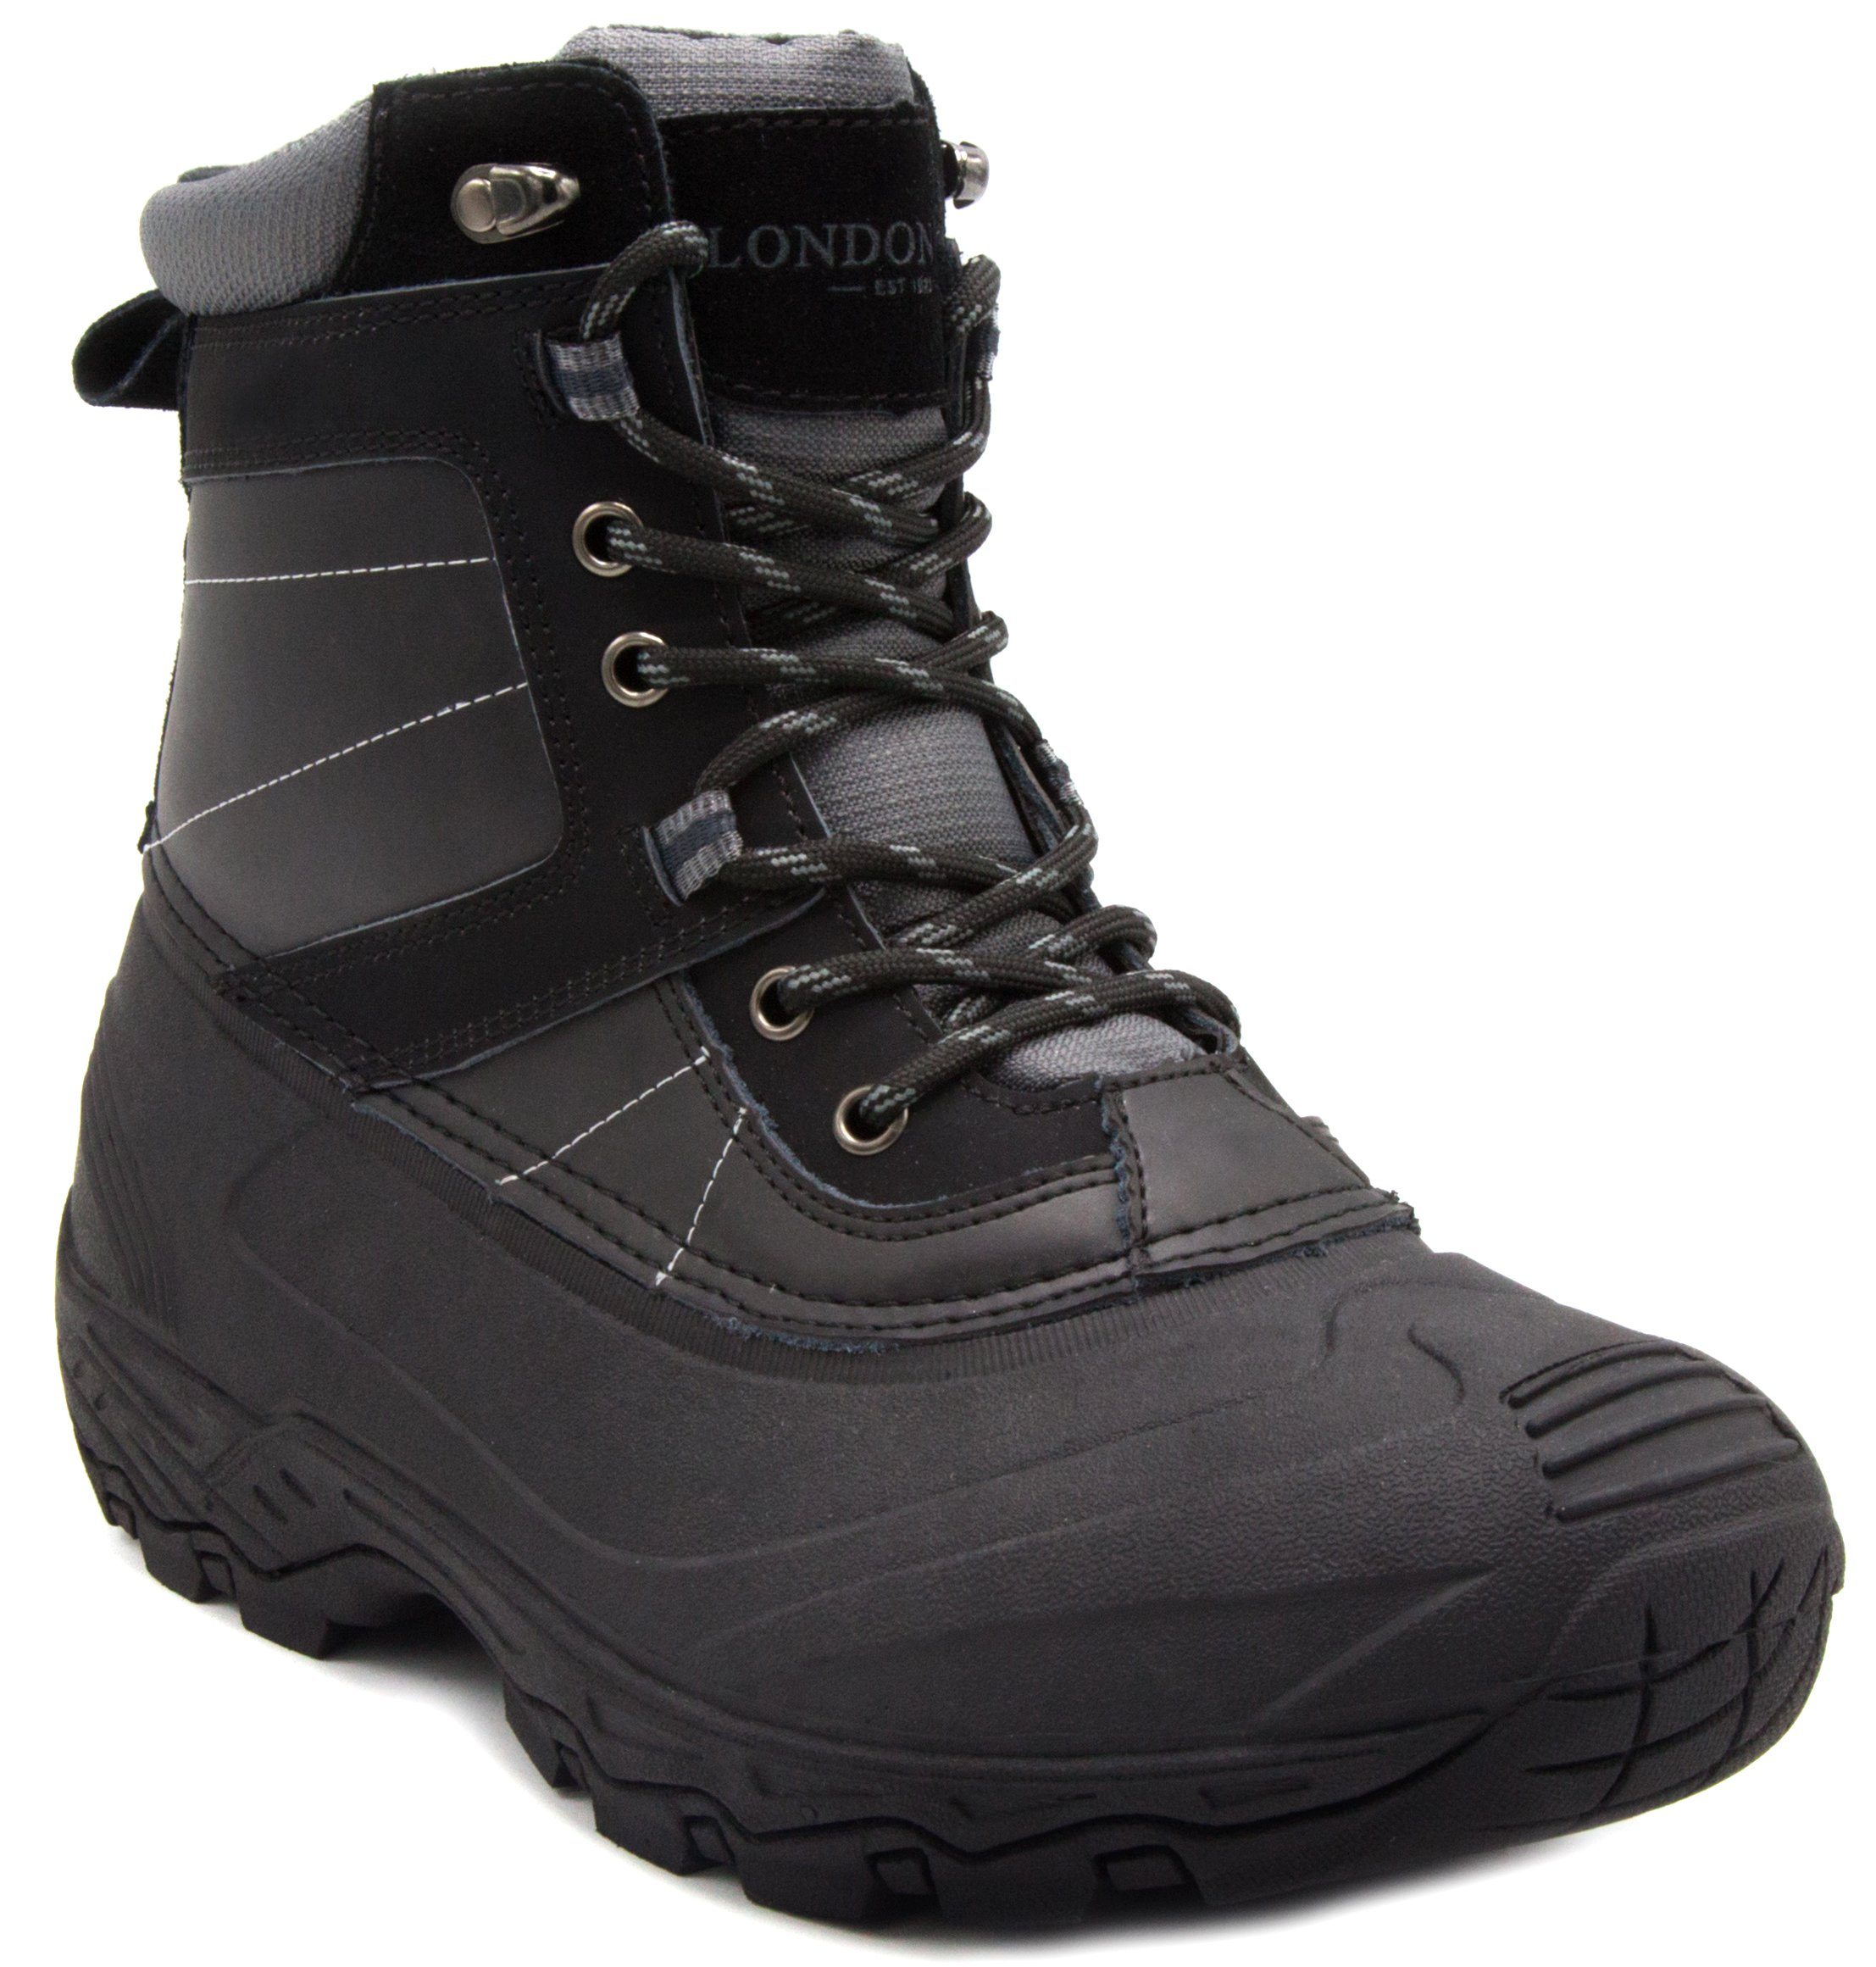 London Fog Mens Kilburn Waterproof Insulated Cold Weather Snow Boot Black 11